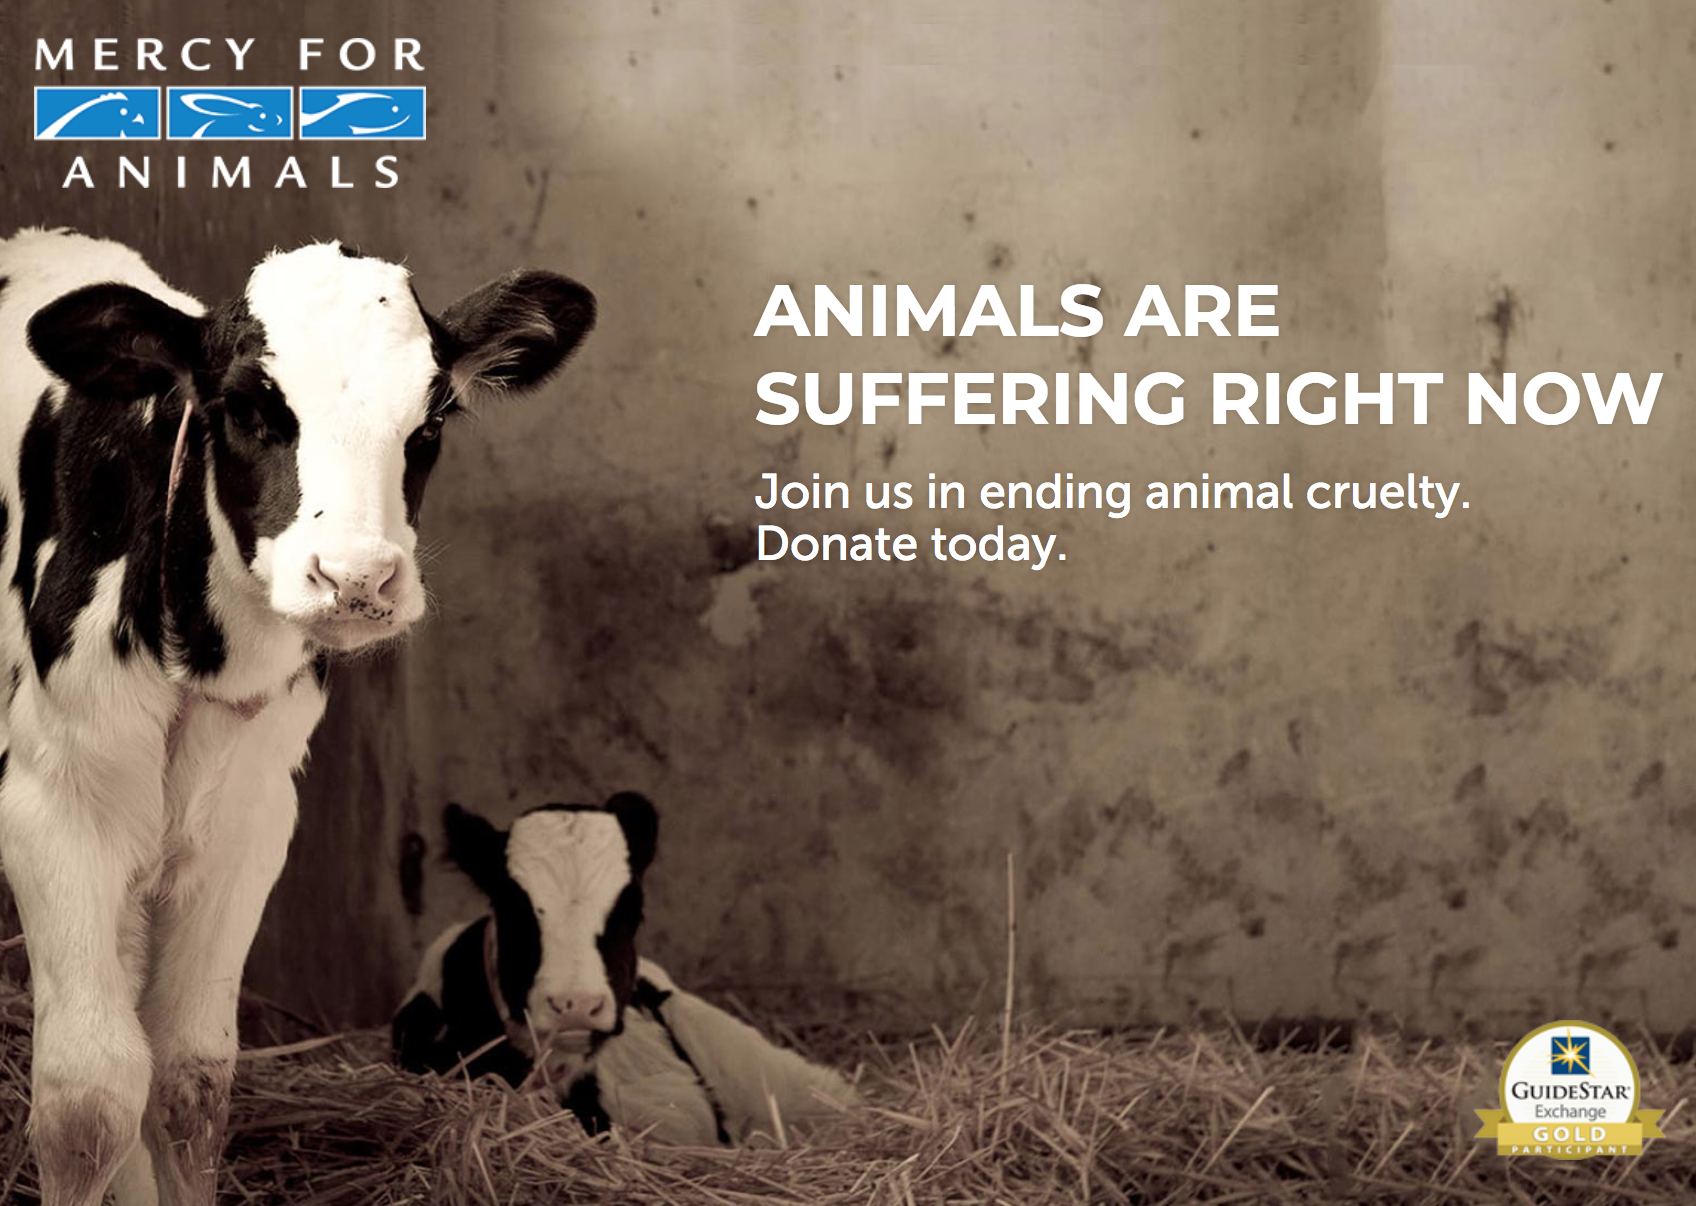 Mercy For Animals - Mercy For Animals believes that a humane society is possible. We are committed to reducing the greatest amount of suffering for the largest number of animals. Our efforts focus on protecting farmed animals—the most abused and exploited animals on the planet—and utilize a broad range of strategic approaches that seek to expose cruelty, prosecute abusers, and inspire consumers to make compassionate food choices.